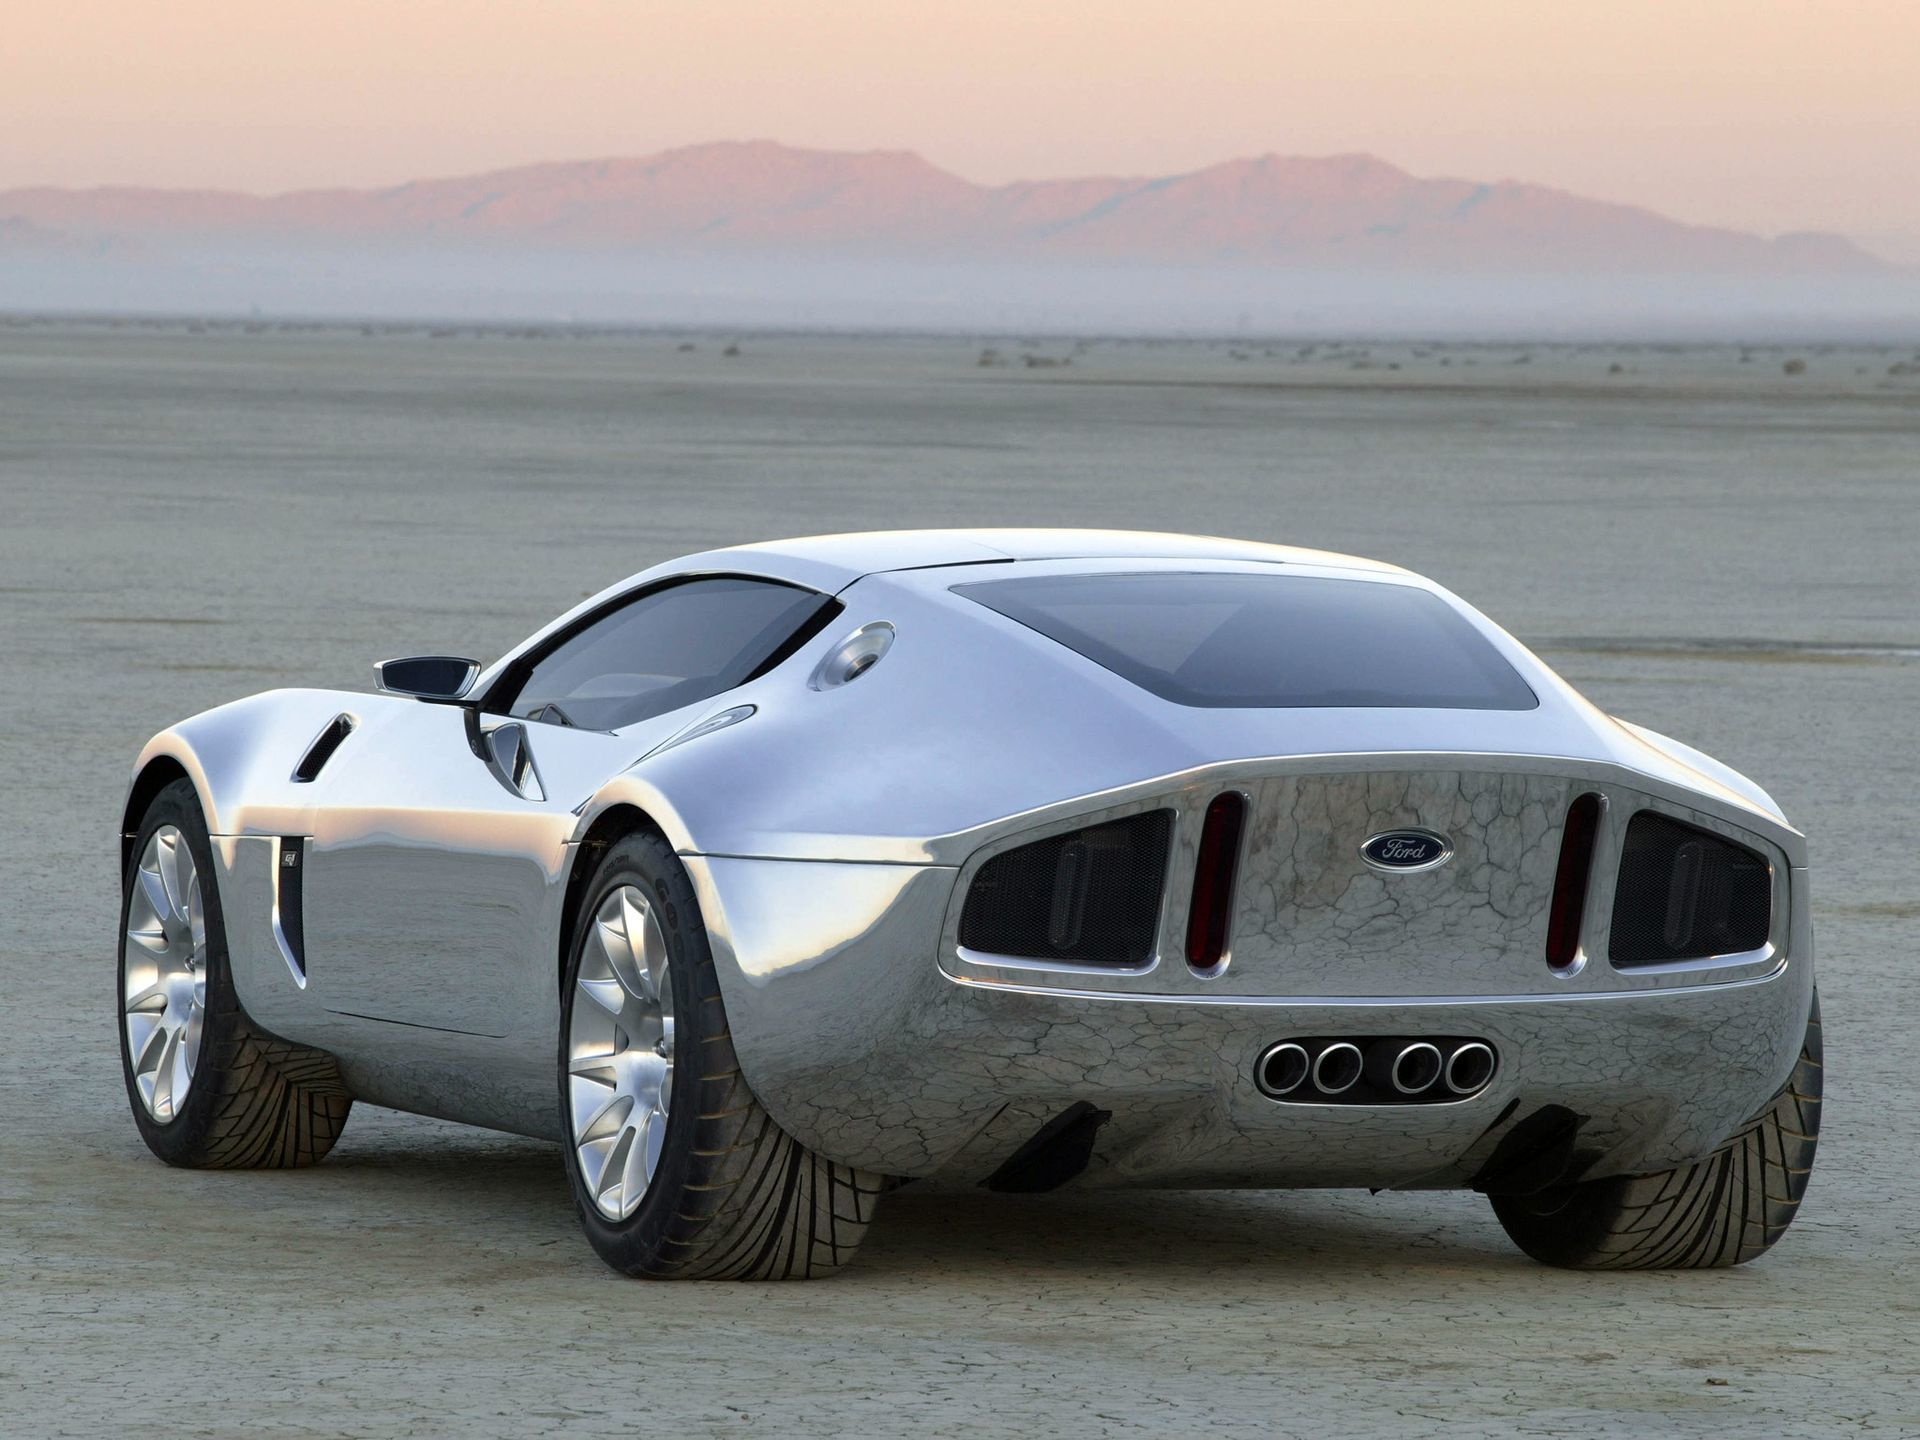 Ford Shelby Gr 1 Concept